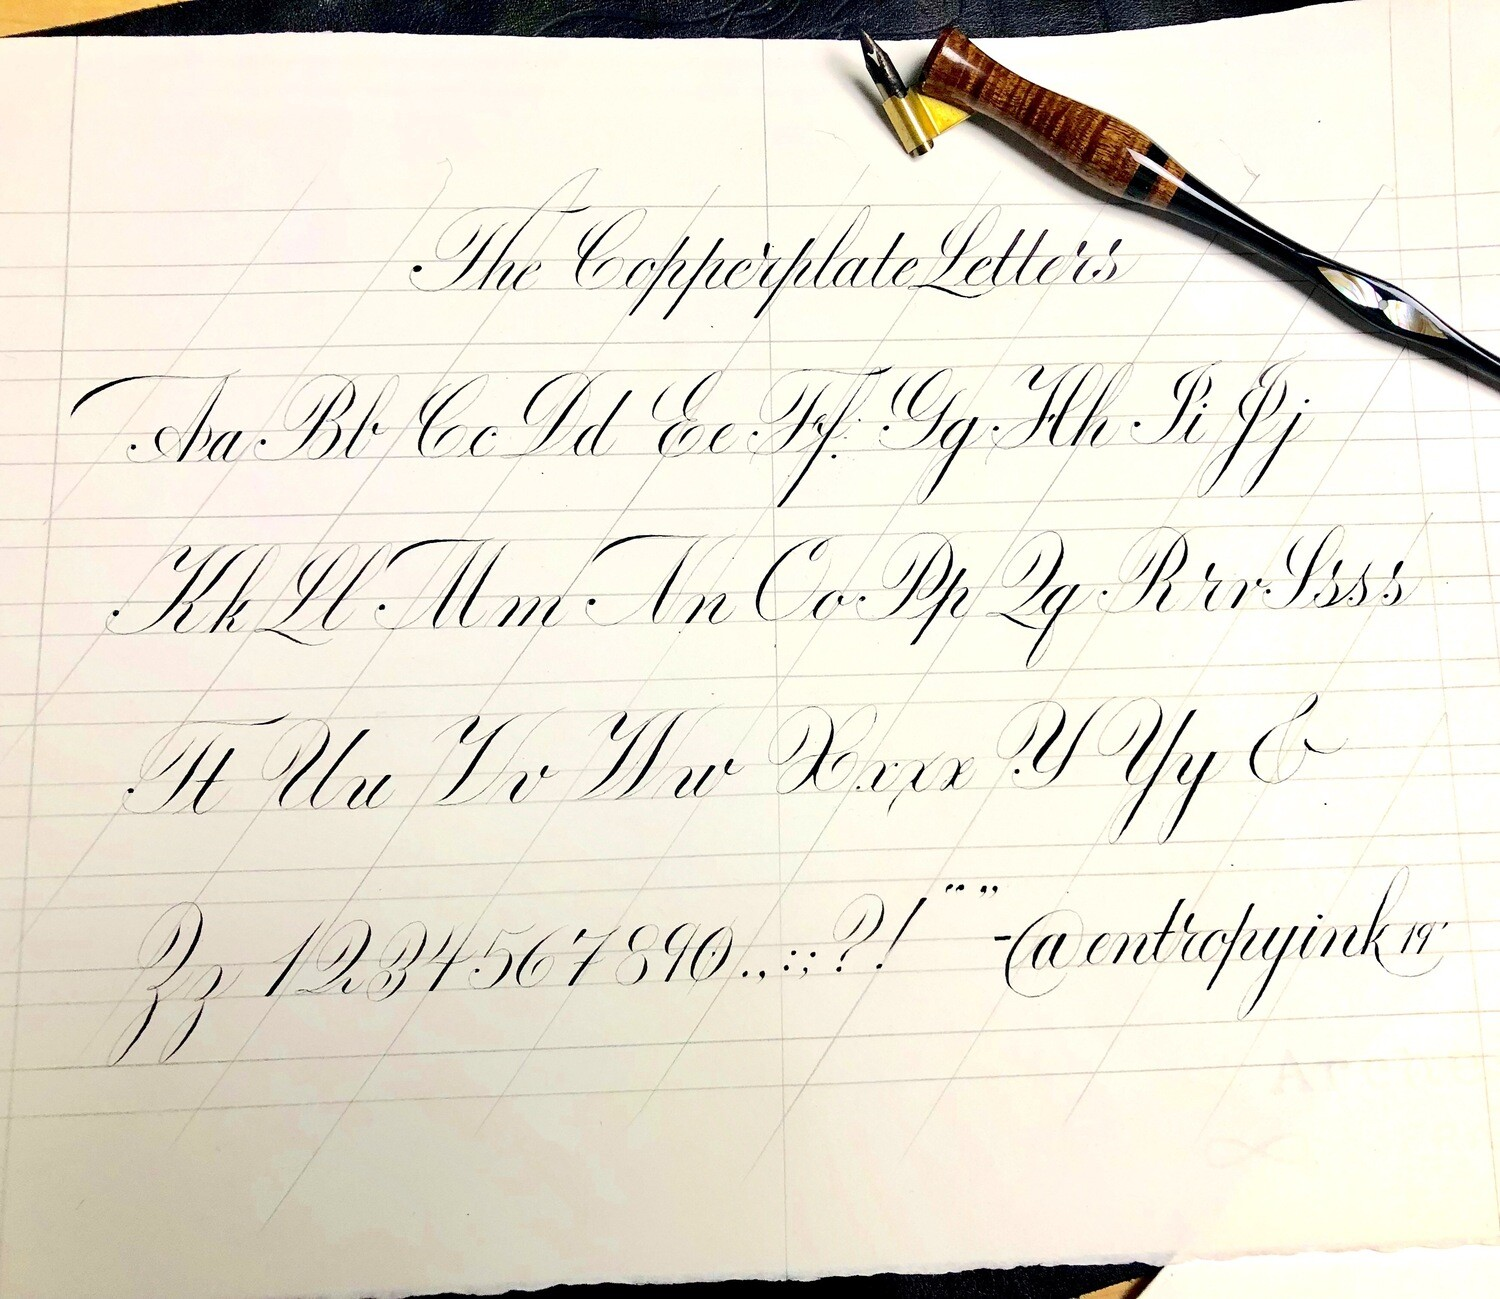 Copperplate Calligraphy with Nik Pang